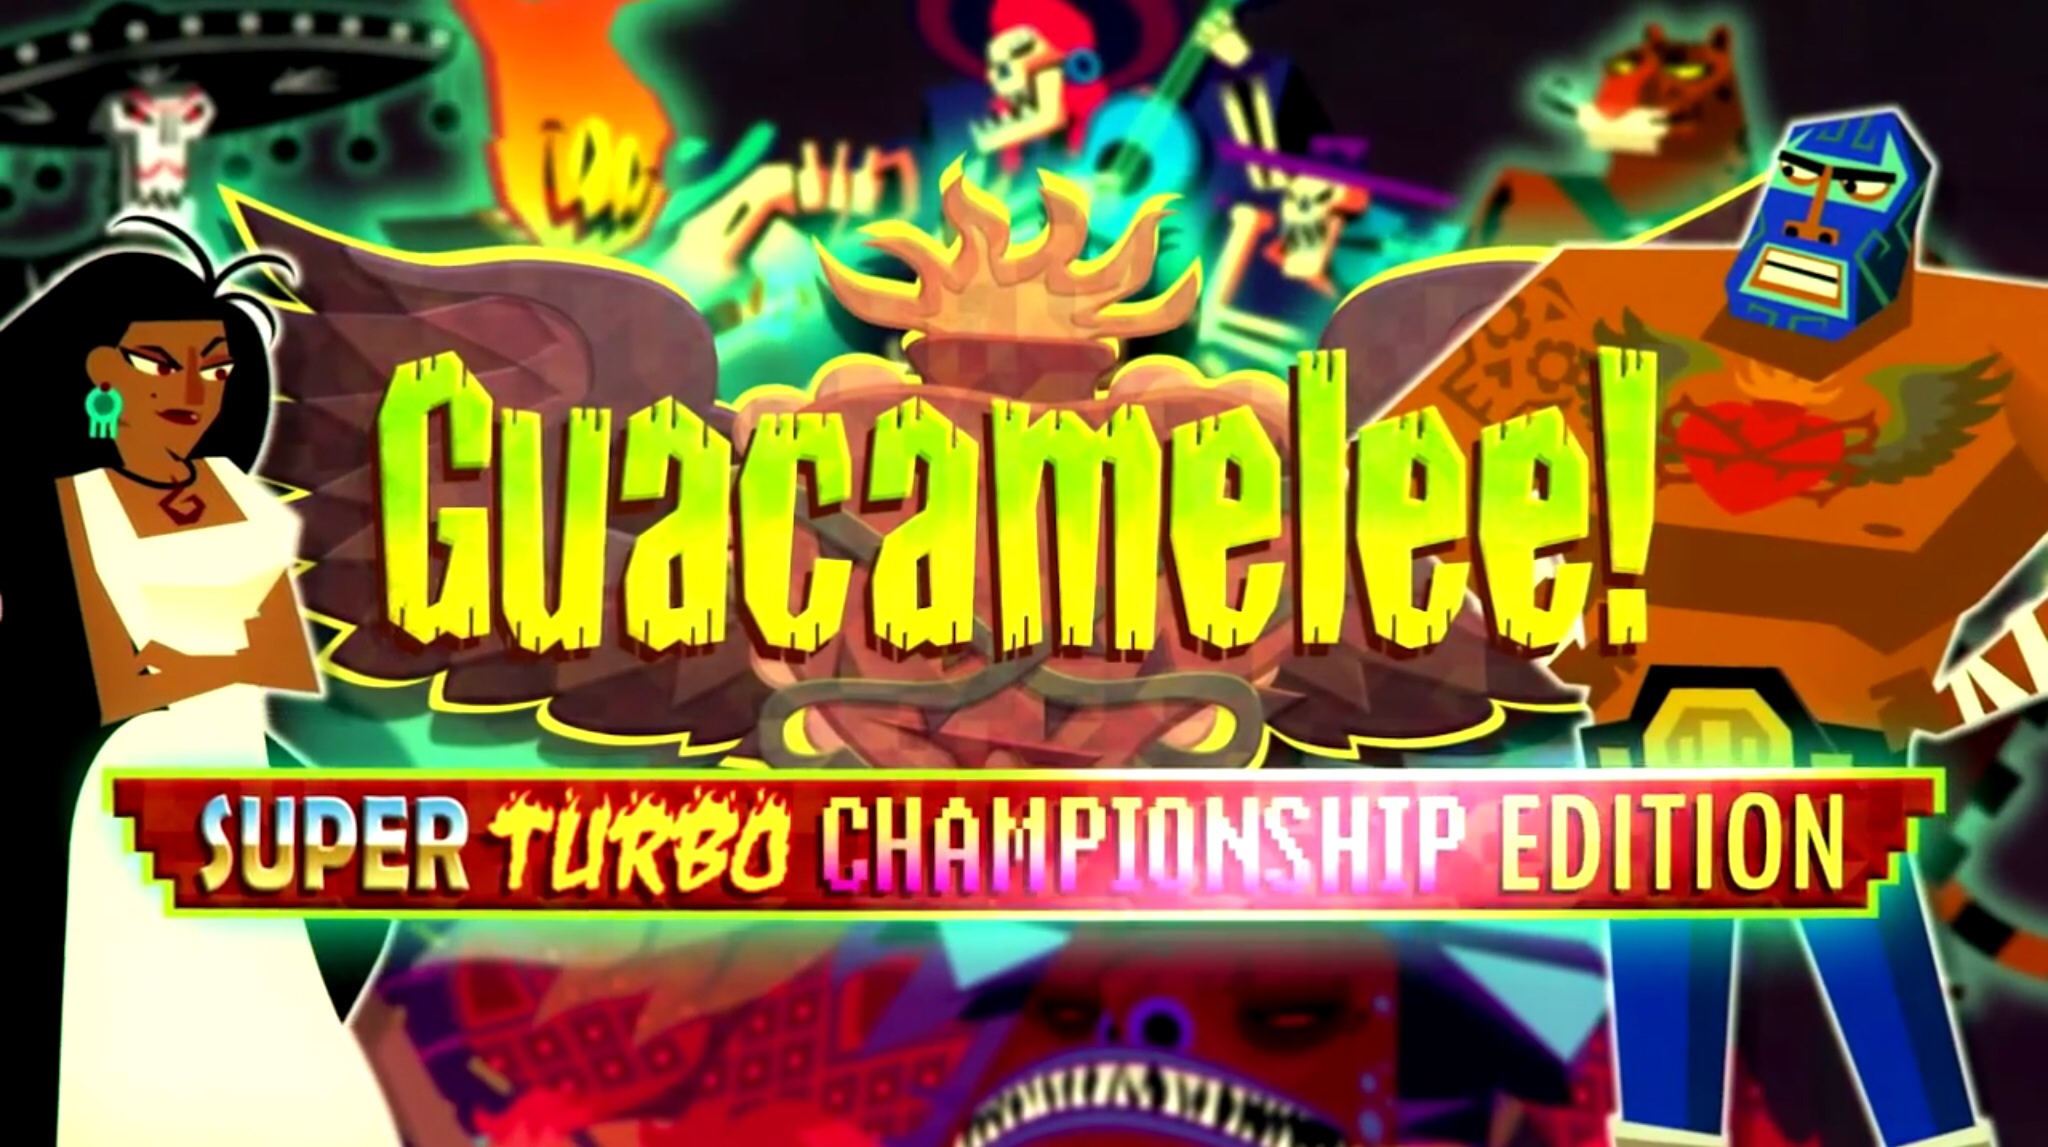 guacamelee super turbo championship edition art